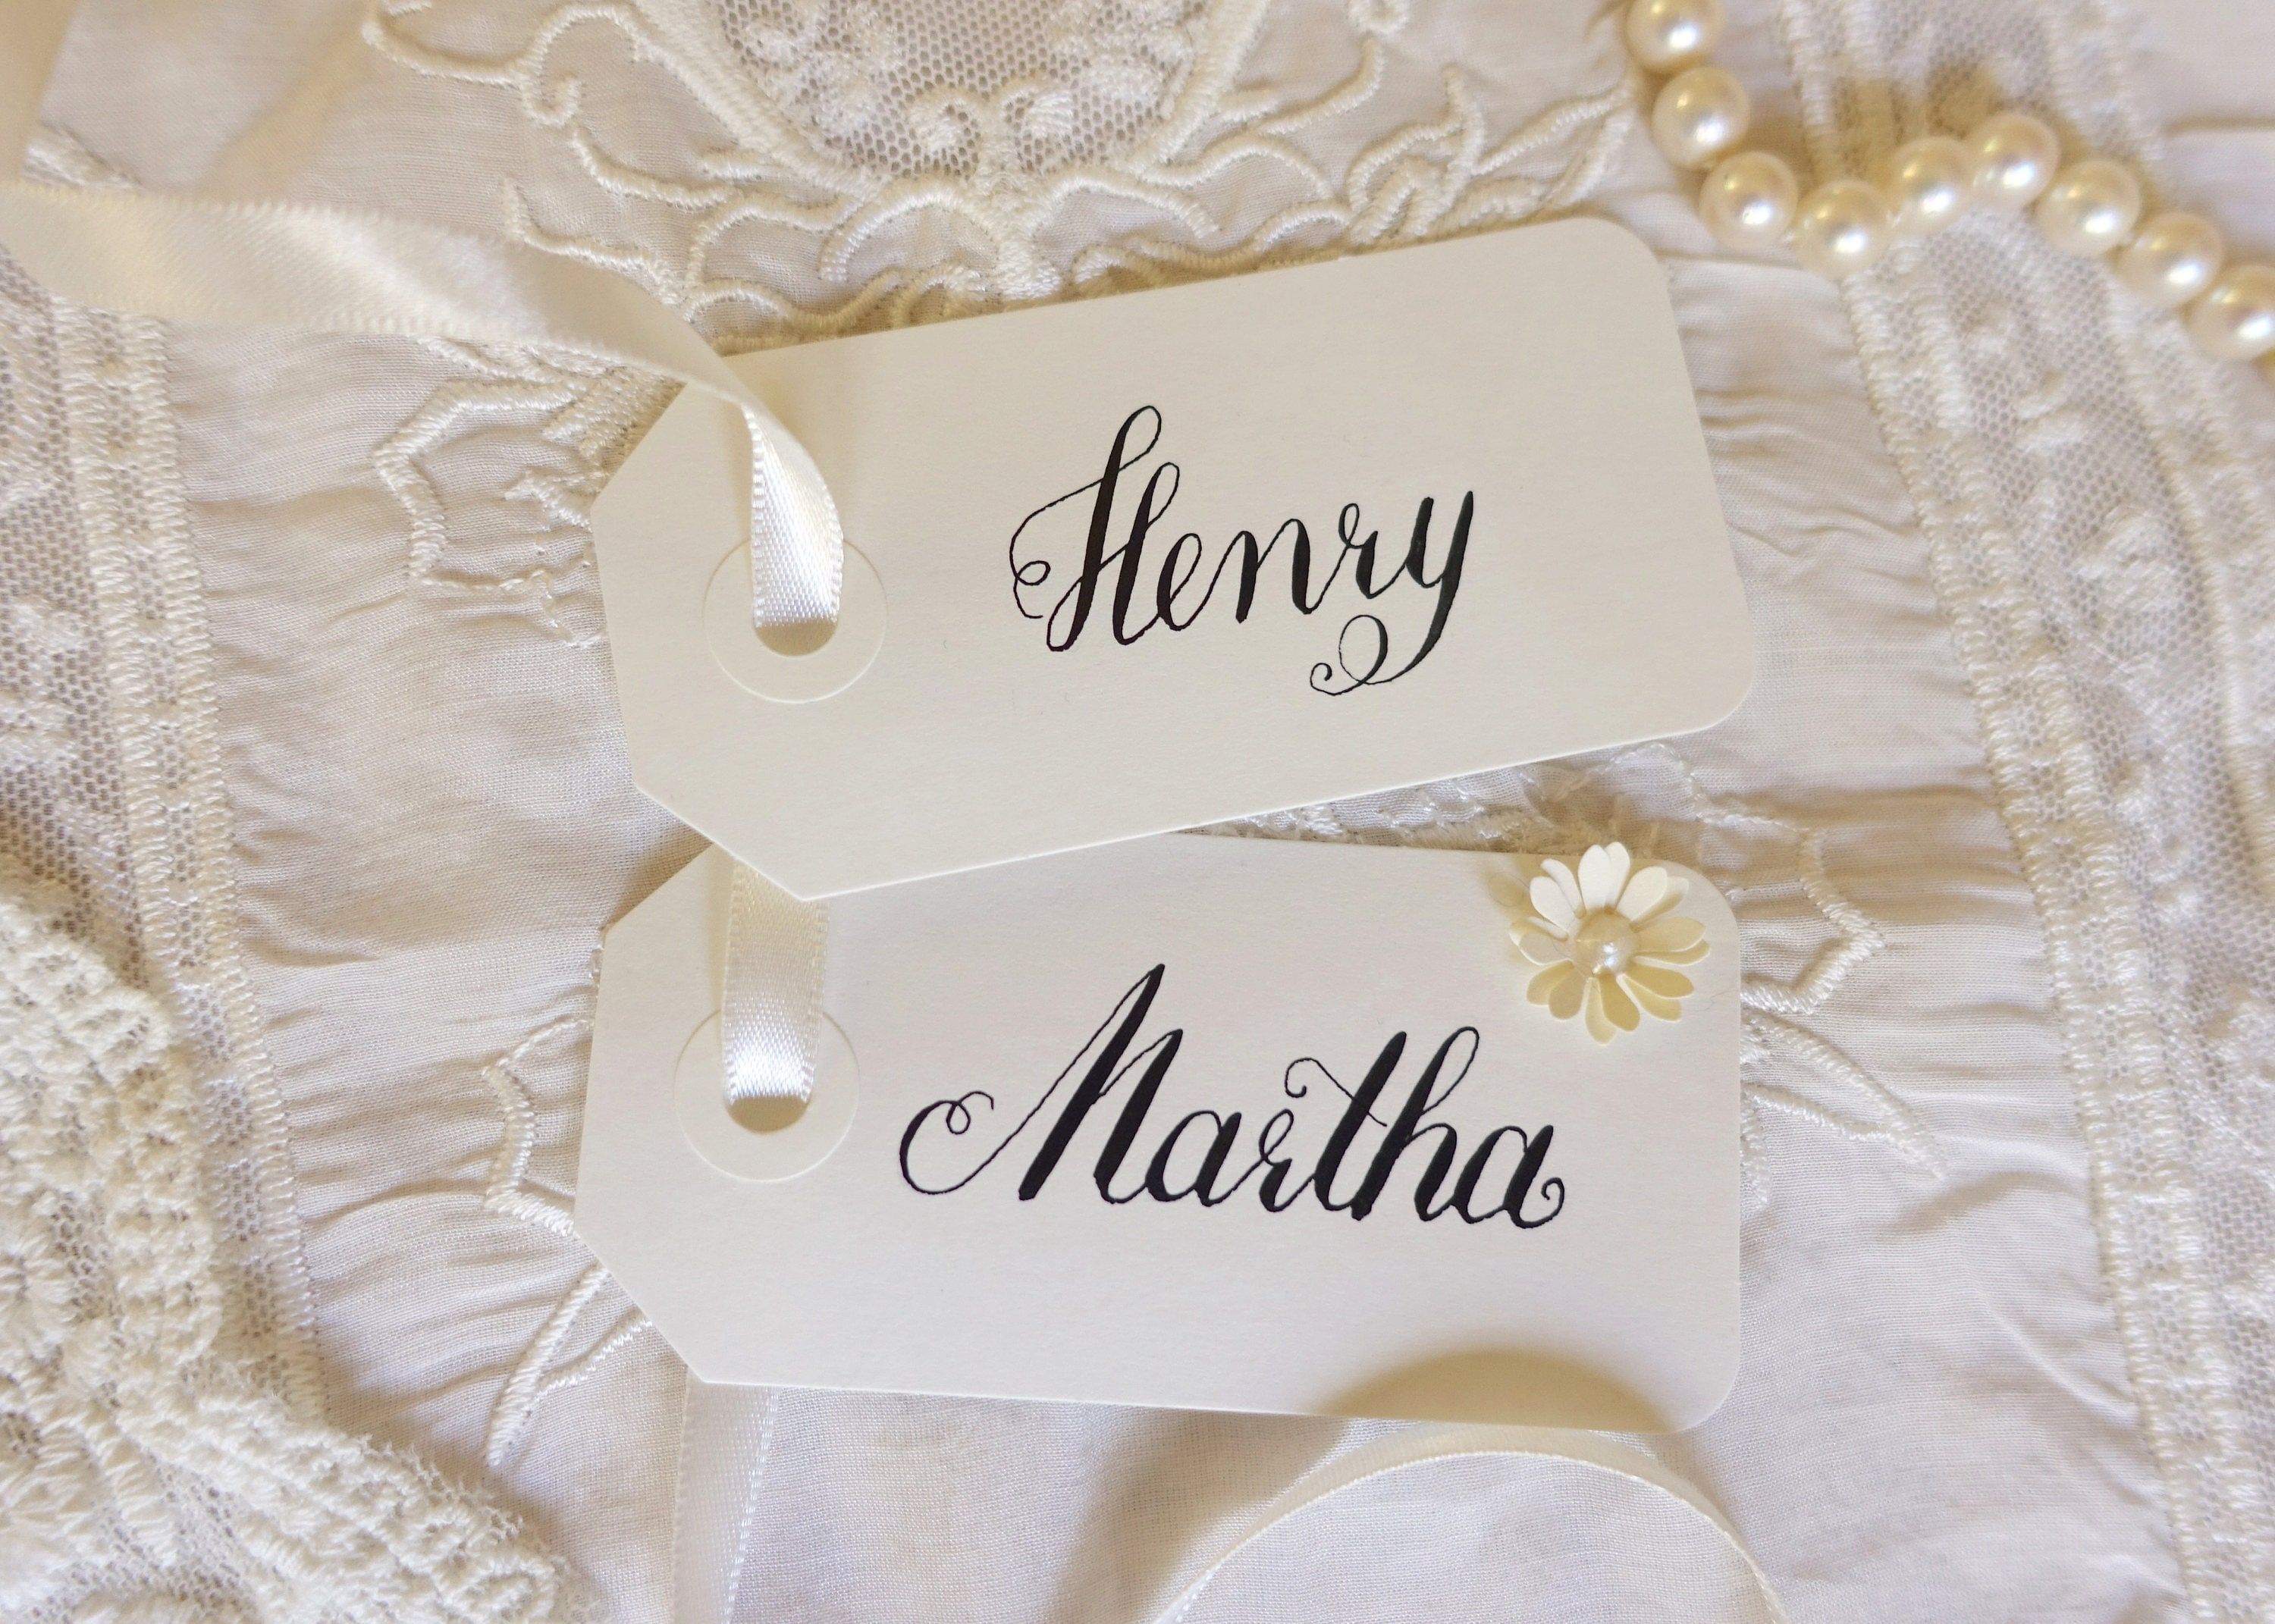 Elegant name tags - wedding - placecards - place cards - name cards ...